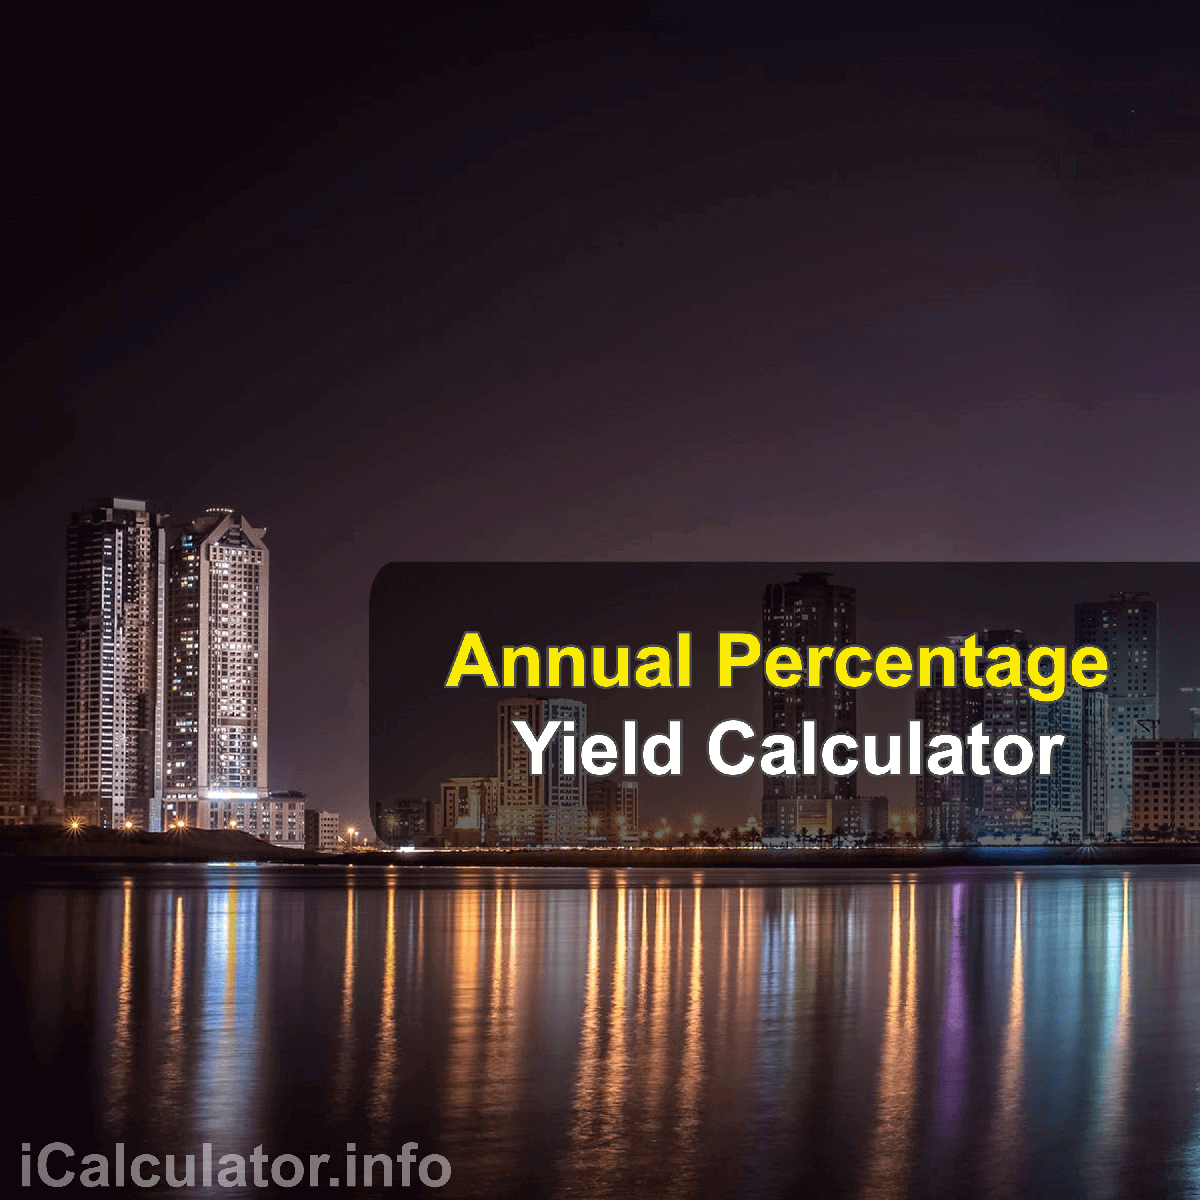 Annual Percentage Yield Calculator. This image provides details of how to calculate Annual Percentage Yield using a calculator and notepad. By using the Annual Percentage Yield formula, the Annual Percentage Yield Calculator provides a true calculation of the amount of money that can be earned with compound interest, the APY will let us know the amount of money earned on the original deposit as well as the interest which is earned